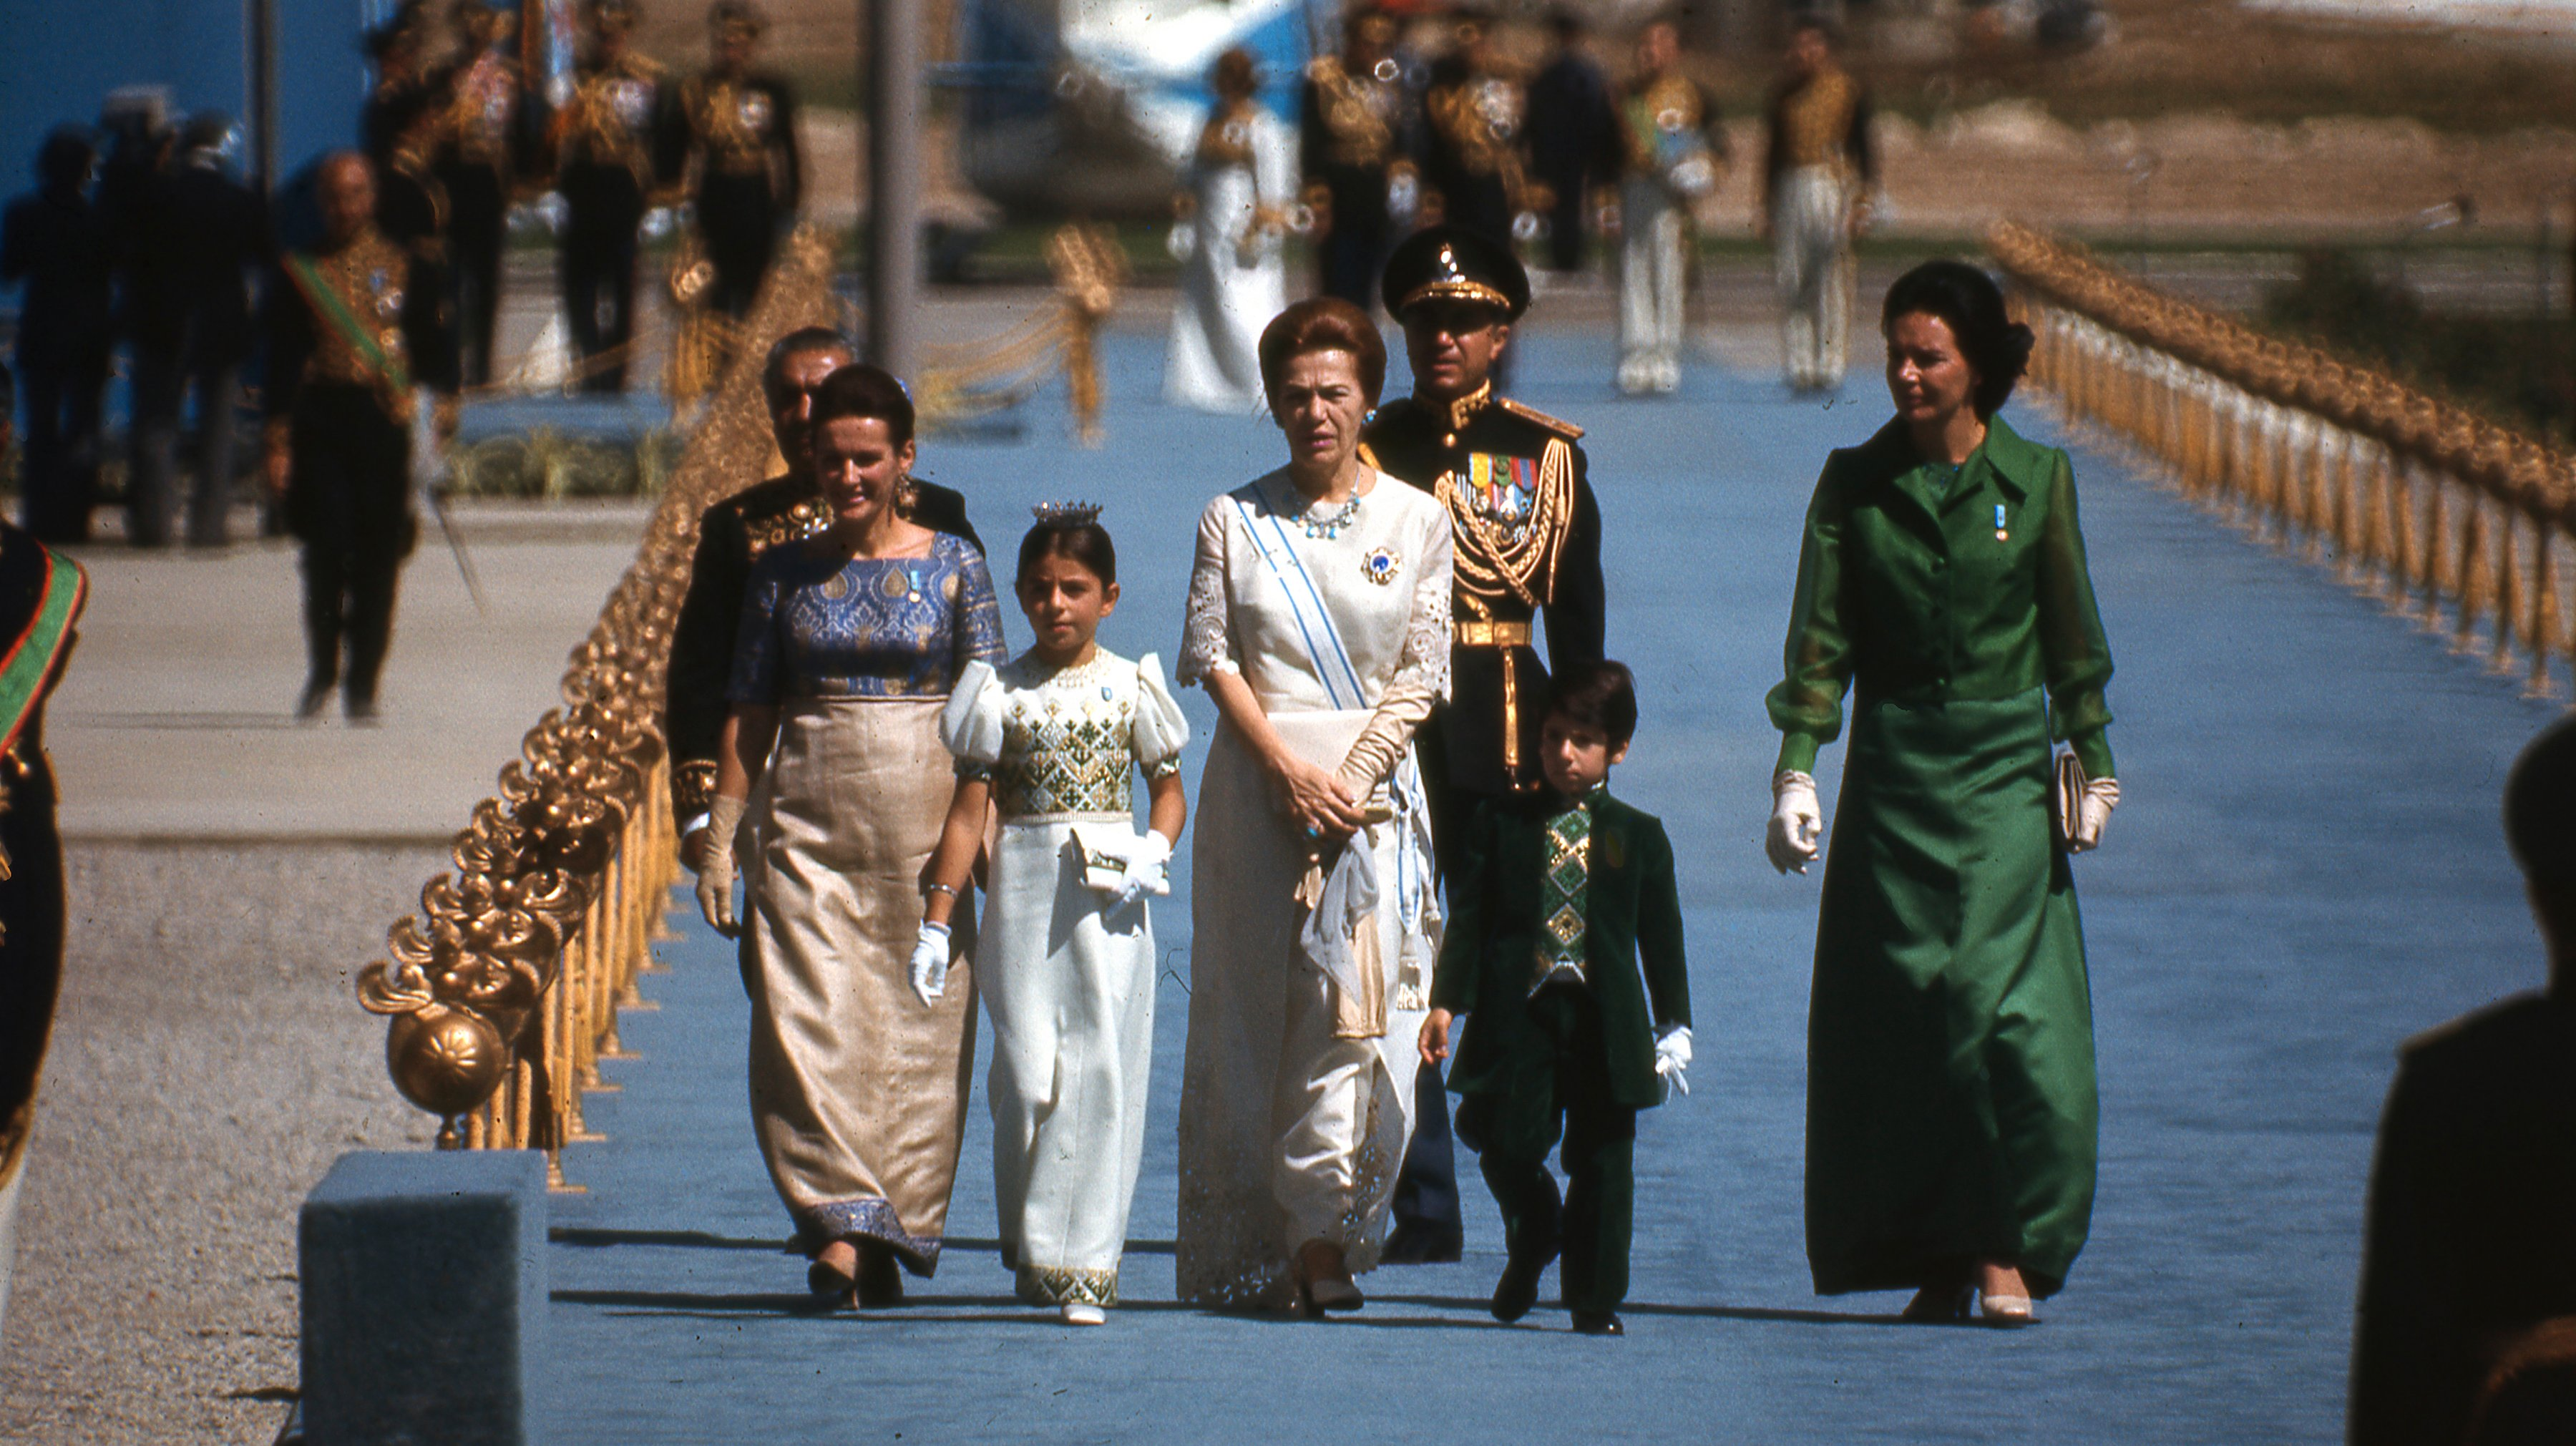 Shah of Iran's mother and children arrive in Persepolis for celebration of 2500th anniversary of founding of Iranian Empire in trent city erected in ruins of Persepolis and attended by foreign dignitaries in October 1971.